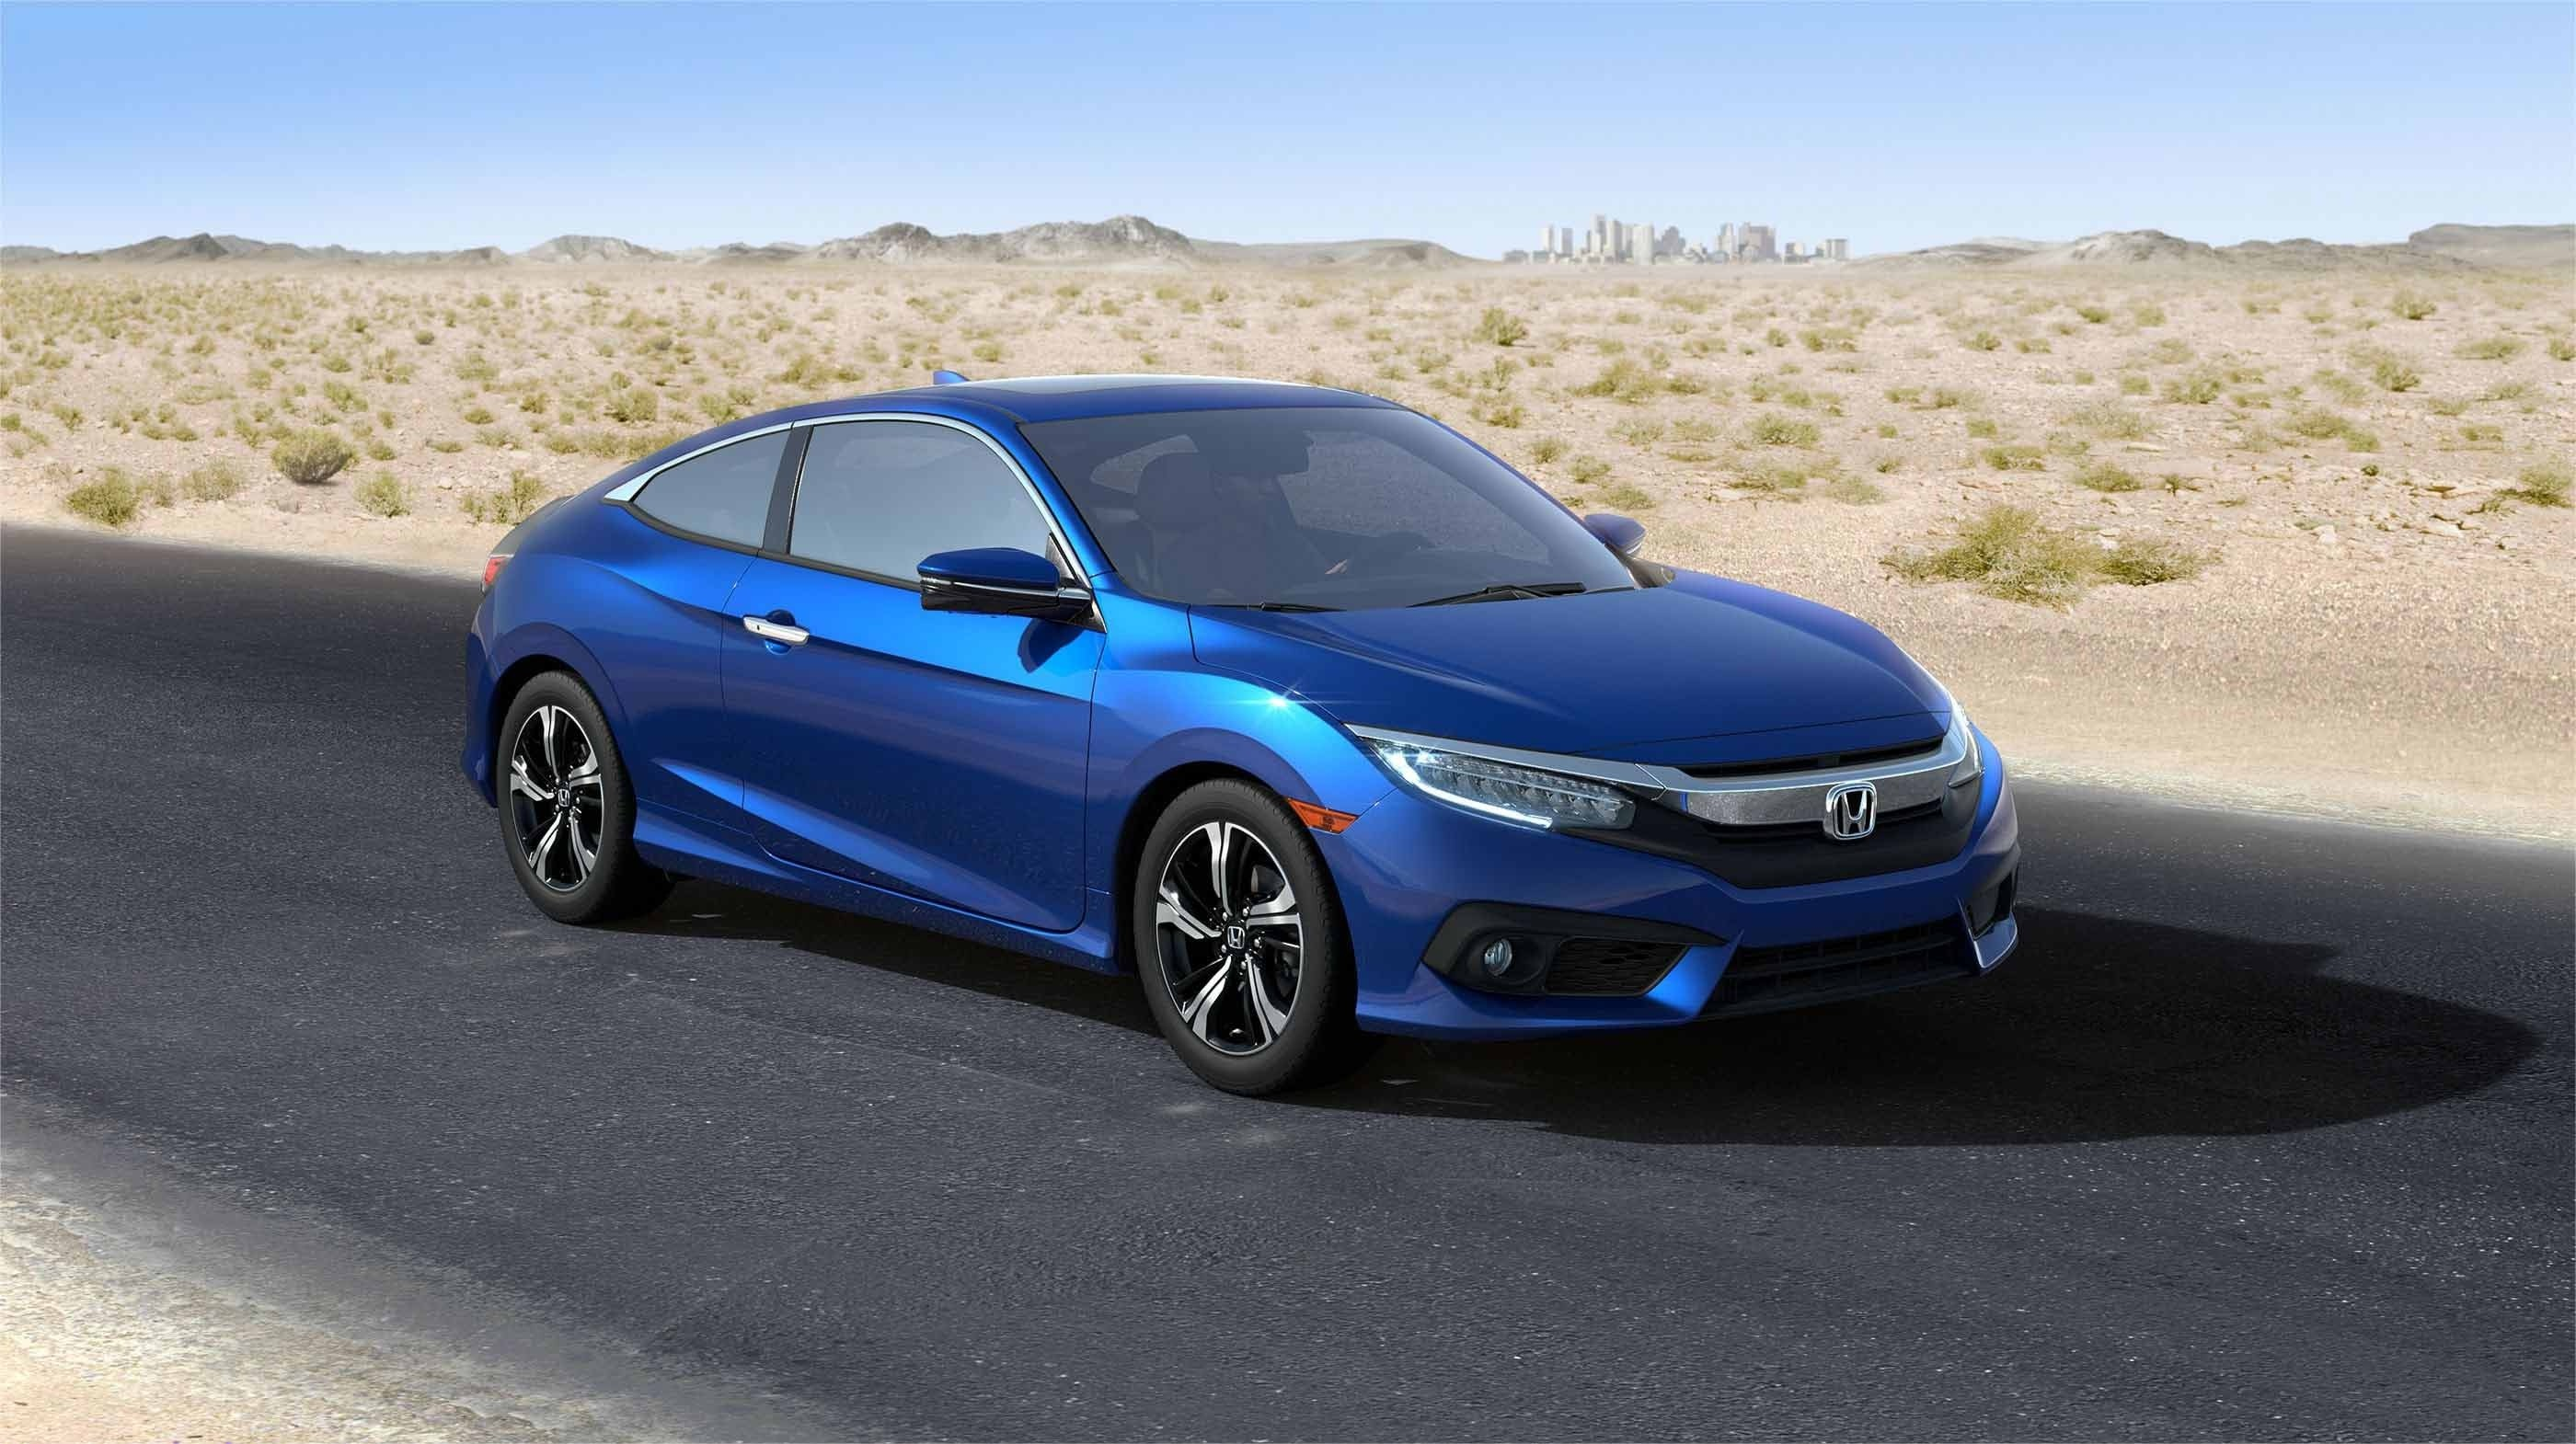 2017 honda civic coupe rock honda fontana ca. Black Bedroom Furniture Sets. Home Design Ideas